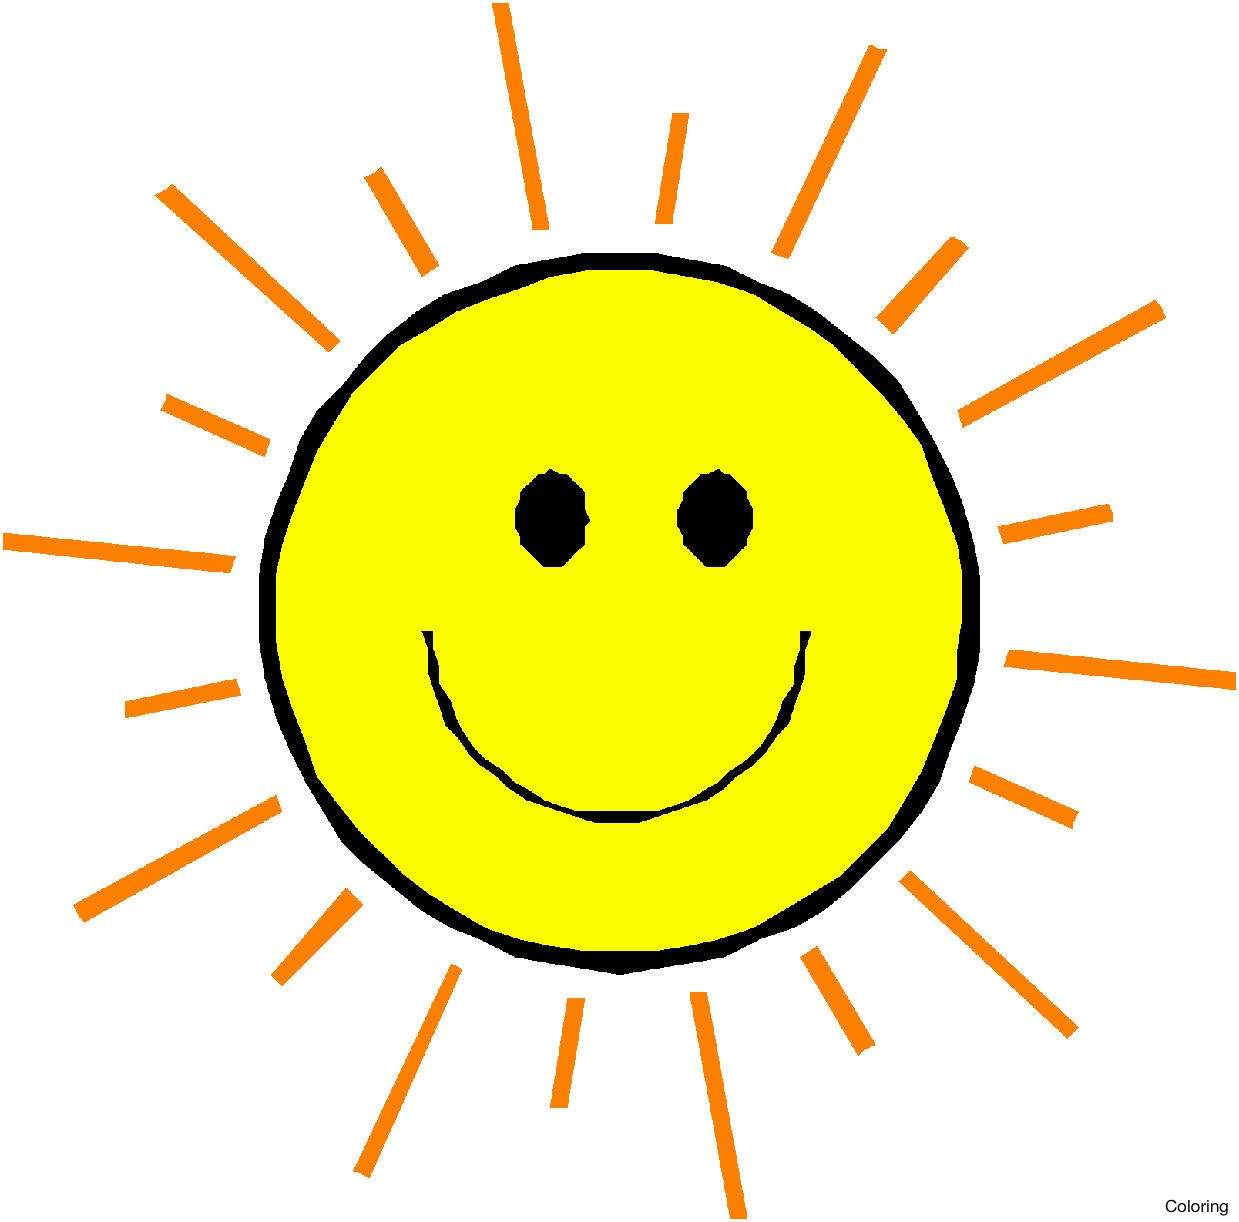 sunshine clipart at getdrawings com free for personal use sunshine rh getdrawings com clip art sunshine pictures clipart sunshine smile